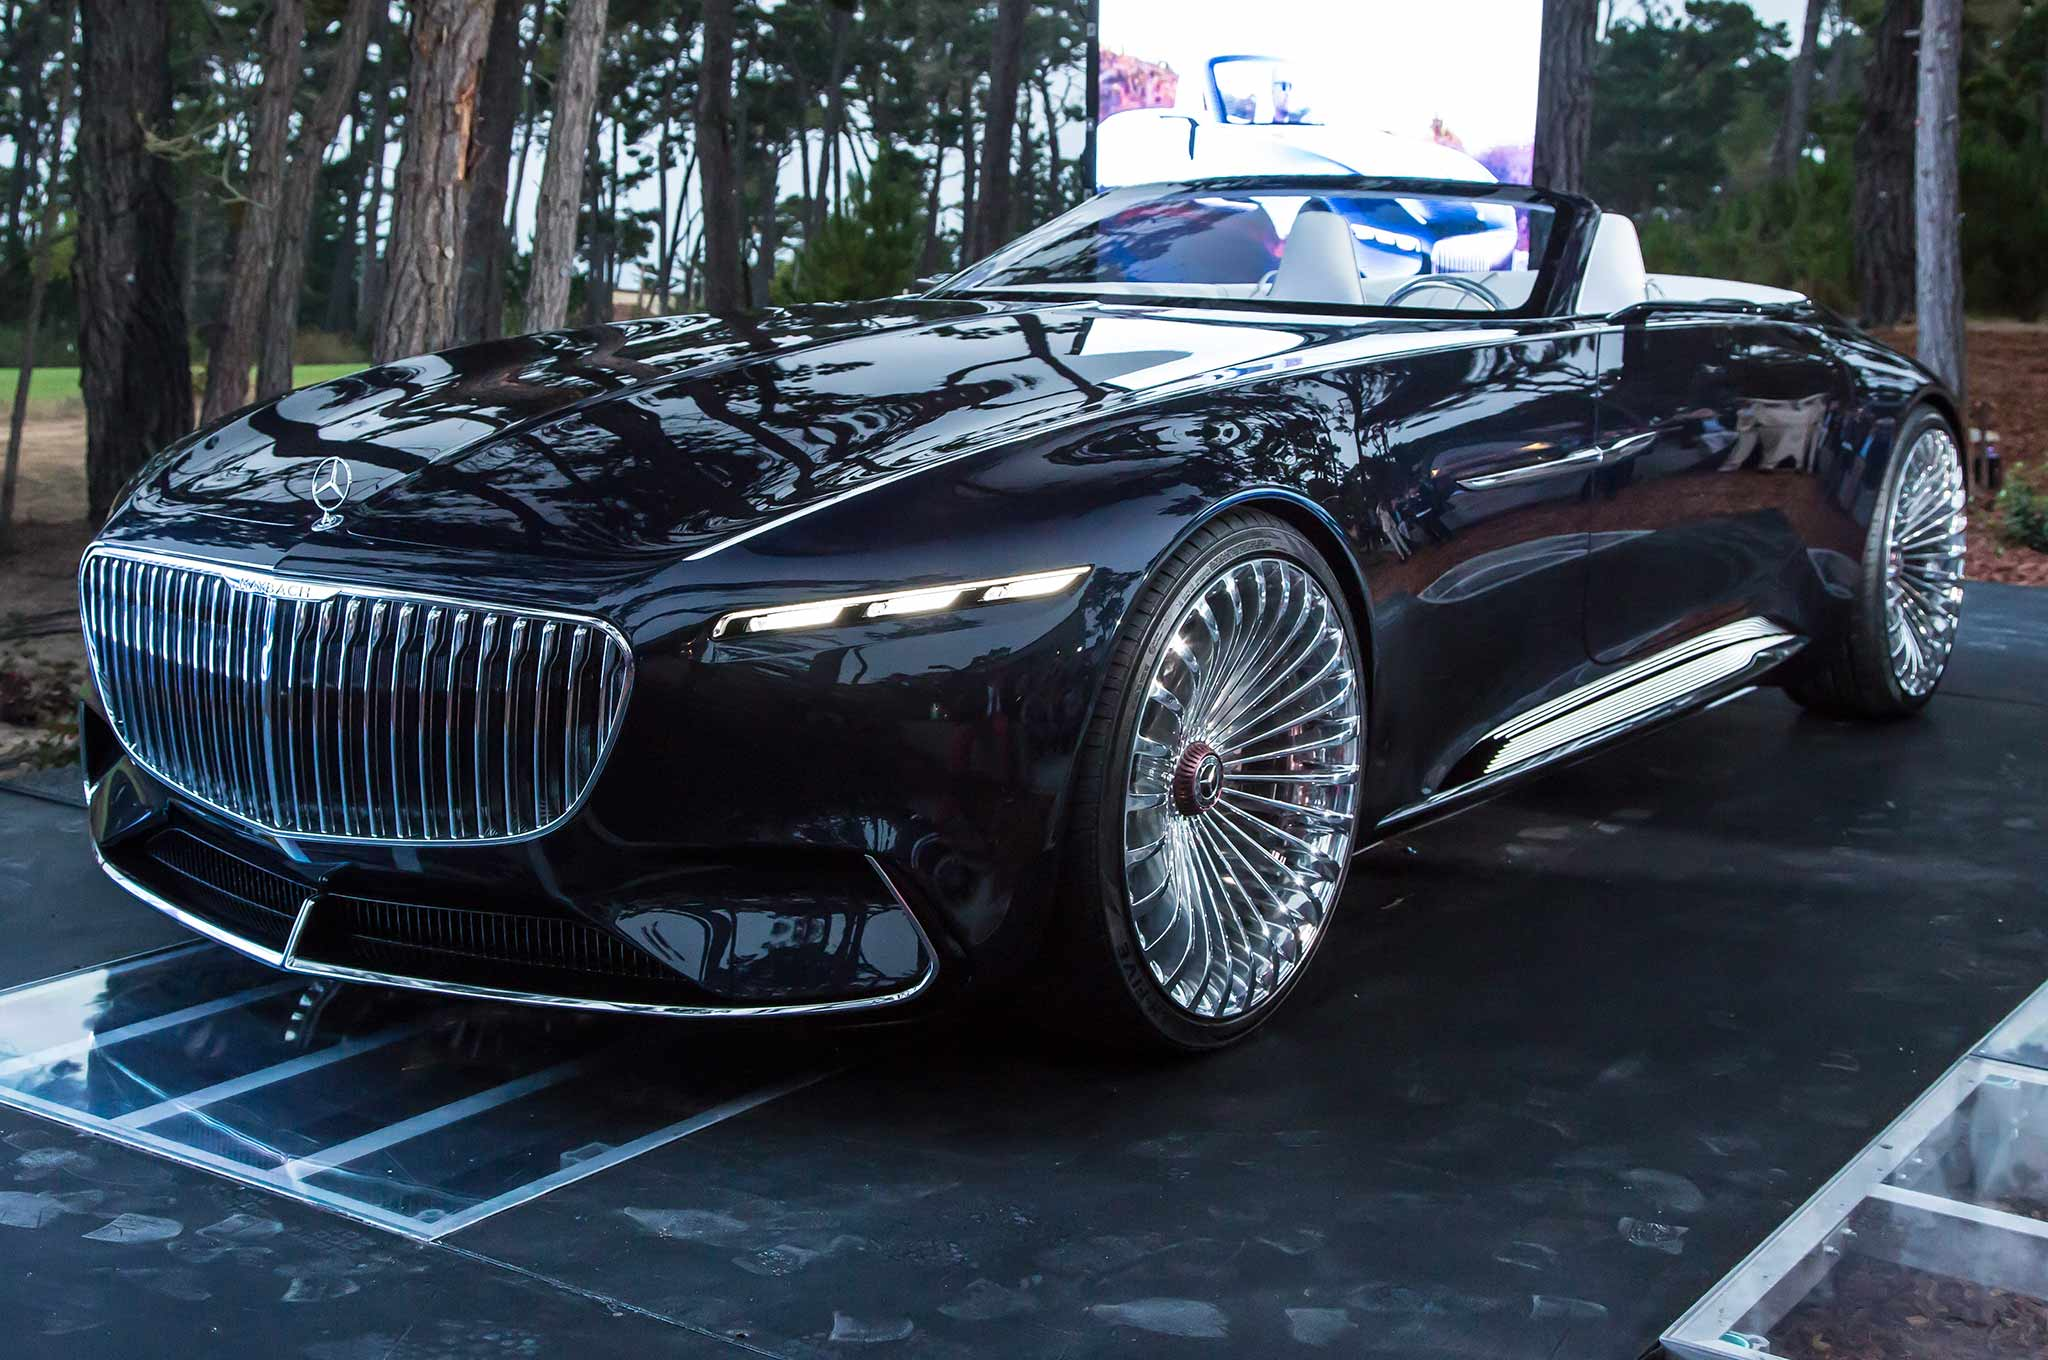 46 The Best 2019 Mercedes Maybach 6 Cabriolet Price Rumors